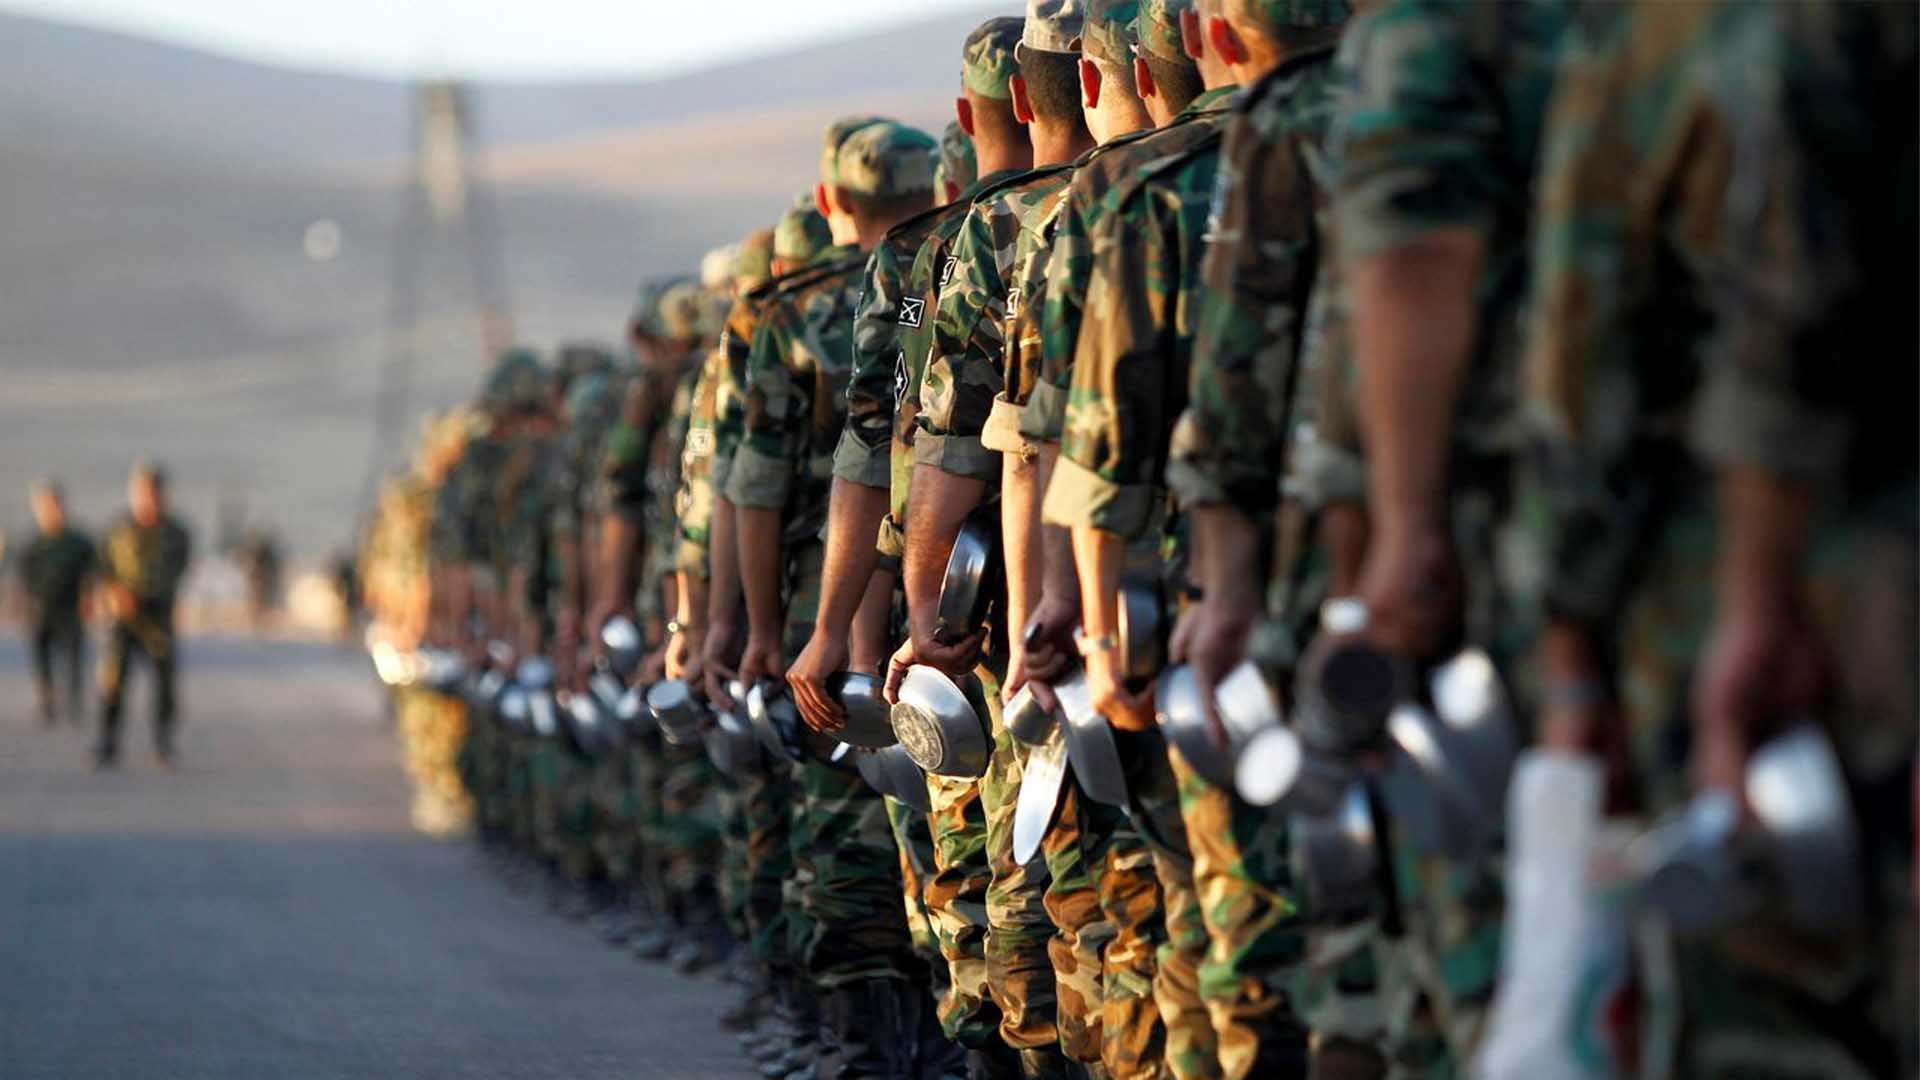 Restructuring the army in the new Syria